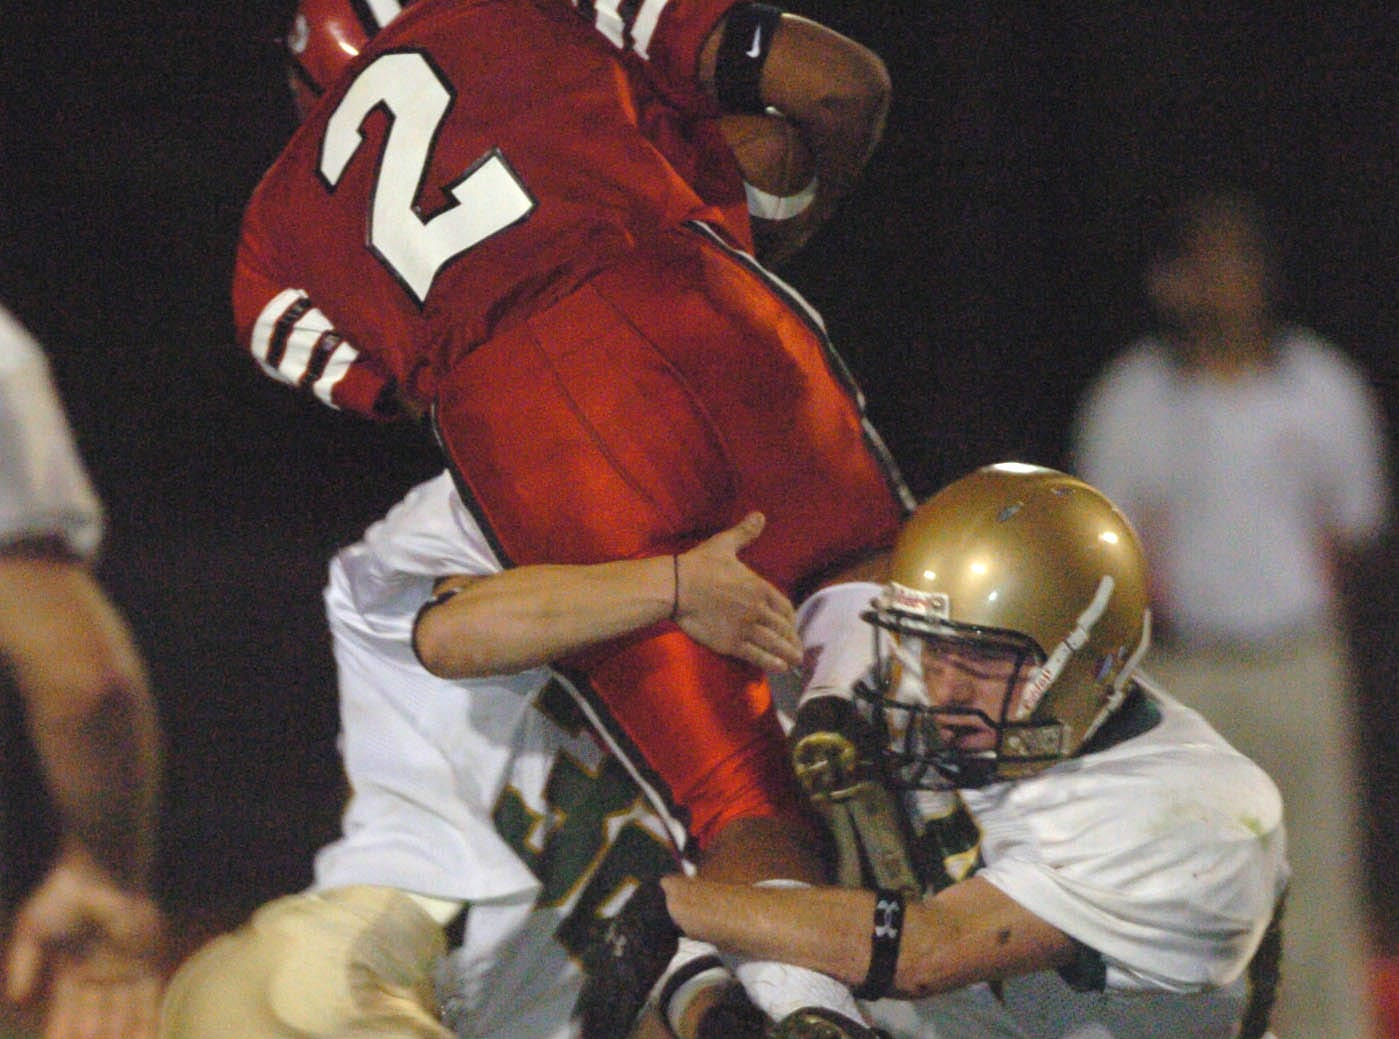 In 2005, Vestal defenders Kevin Godoy, left, and Kenny Sherwod team up to bring down Baldwinsville running back Chris Silva during Class AA football action.